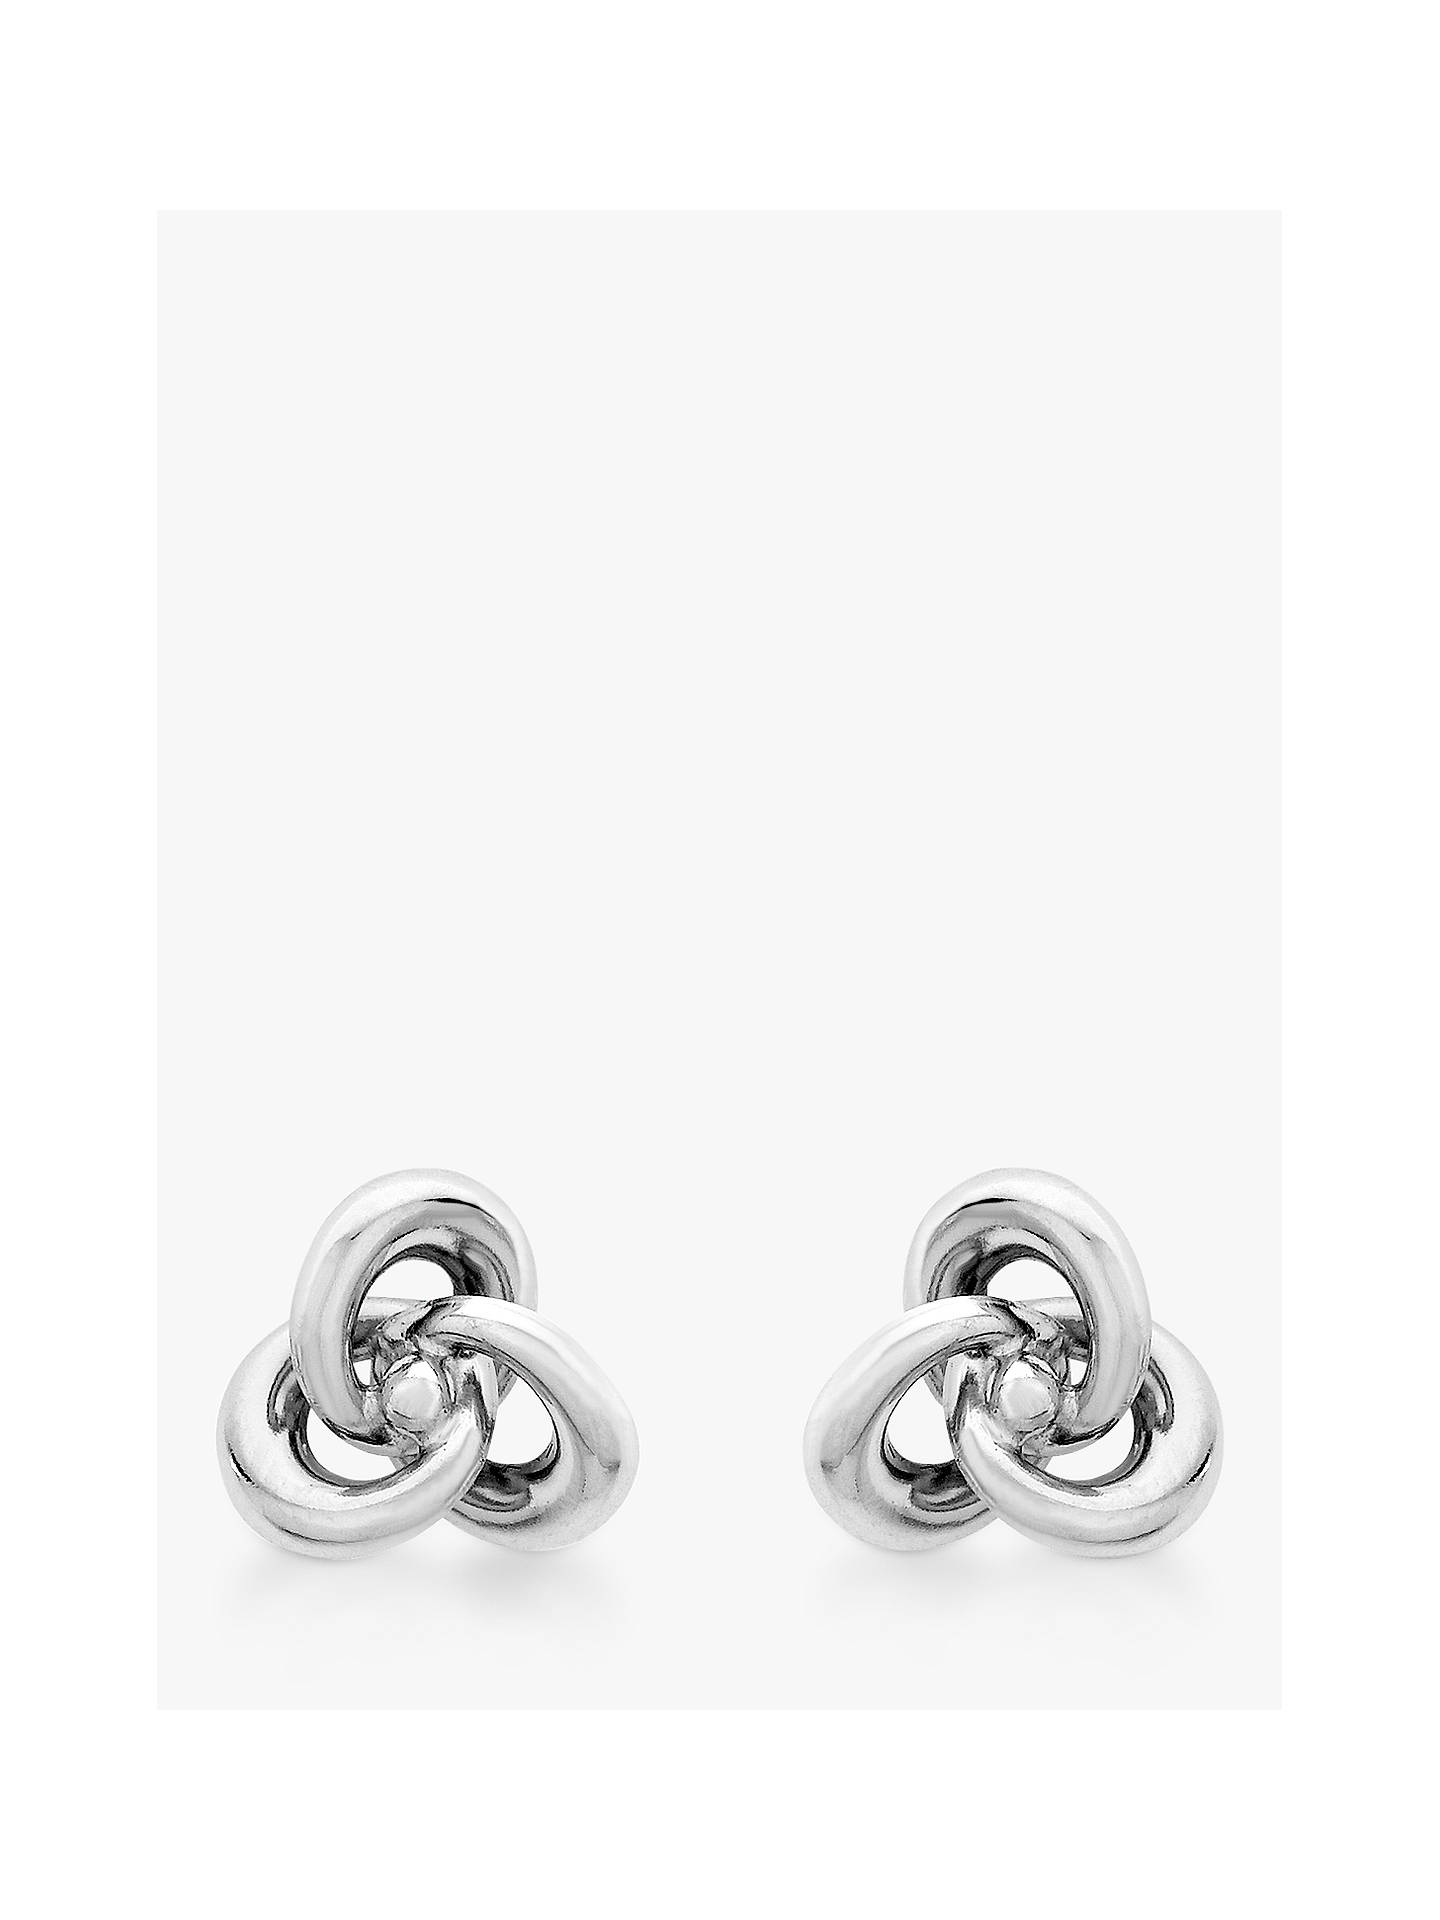 4bbbac3a8 Buy IBB 9ct White Gold Knot Stud Earrings, White Online at johnlewis.com ...